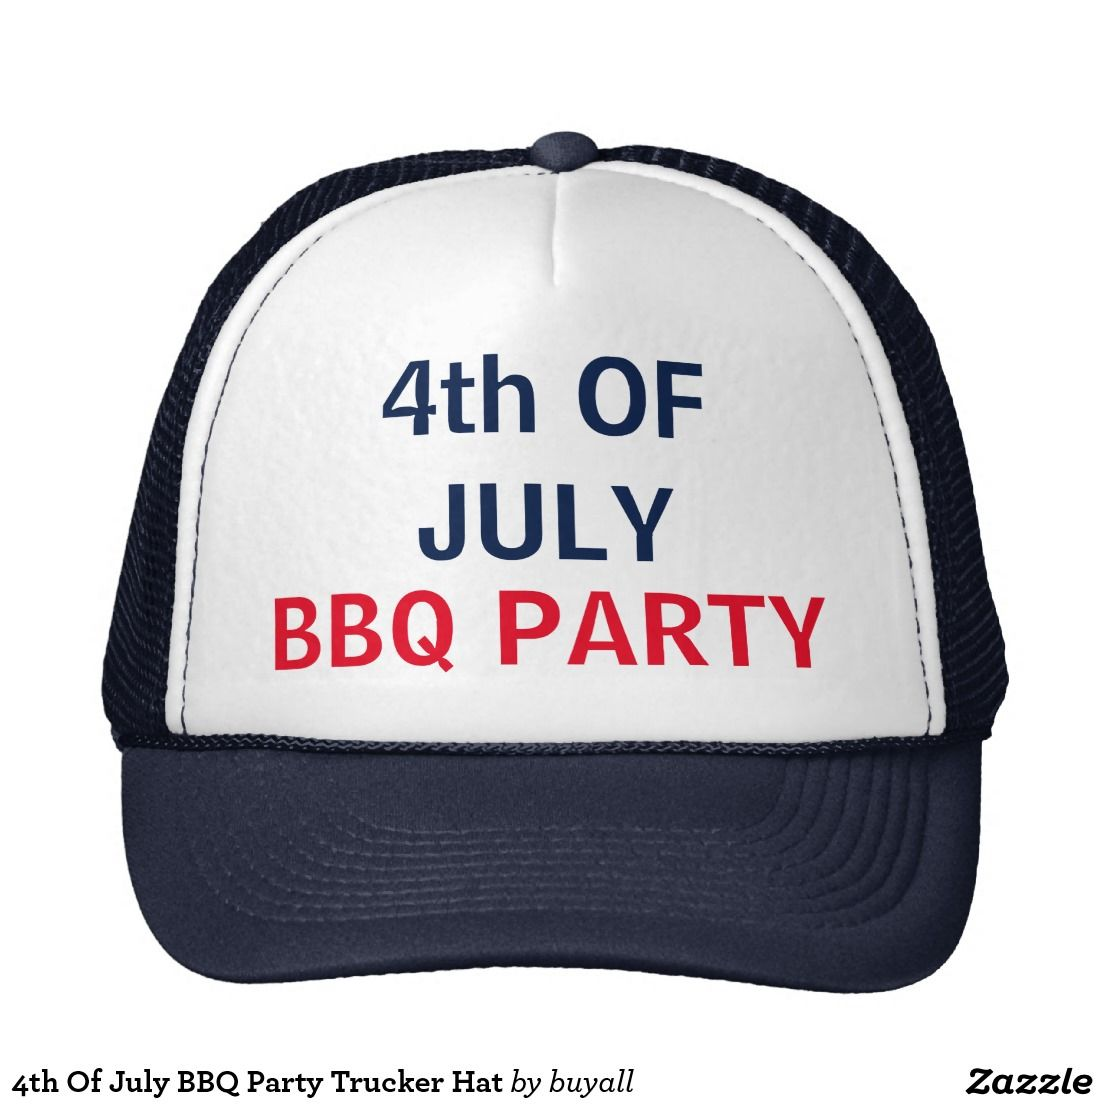 4th Of July BBQ Party Trucker Hat